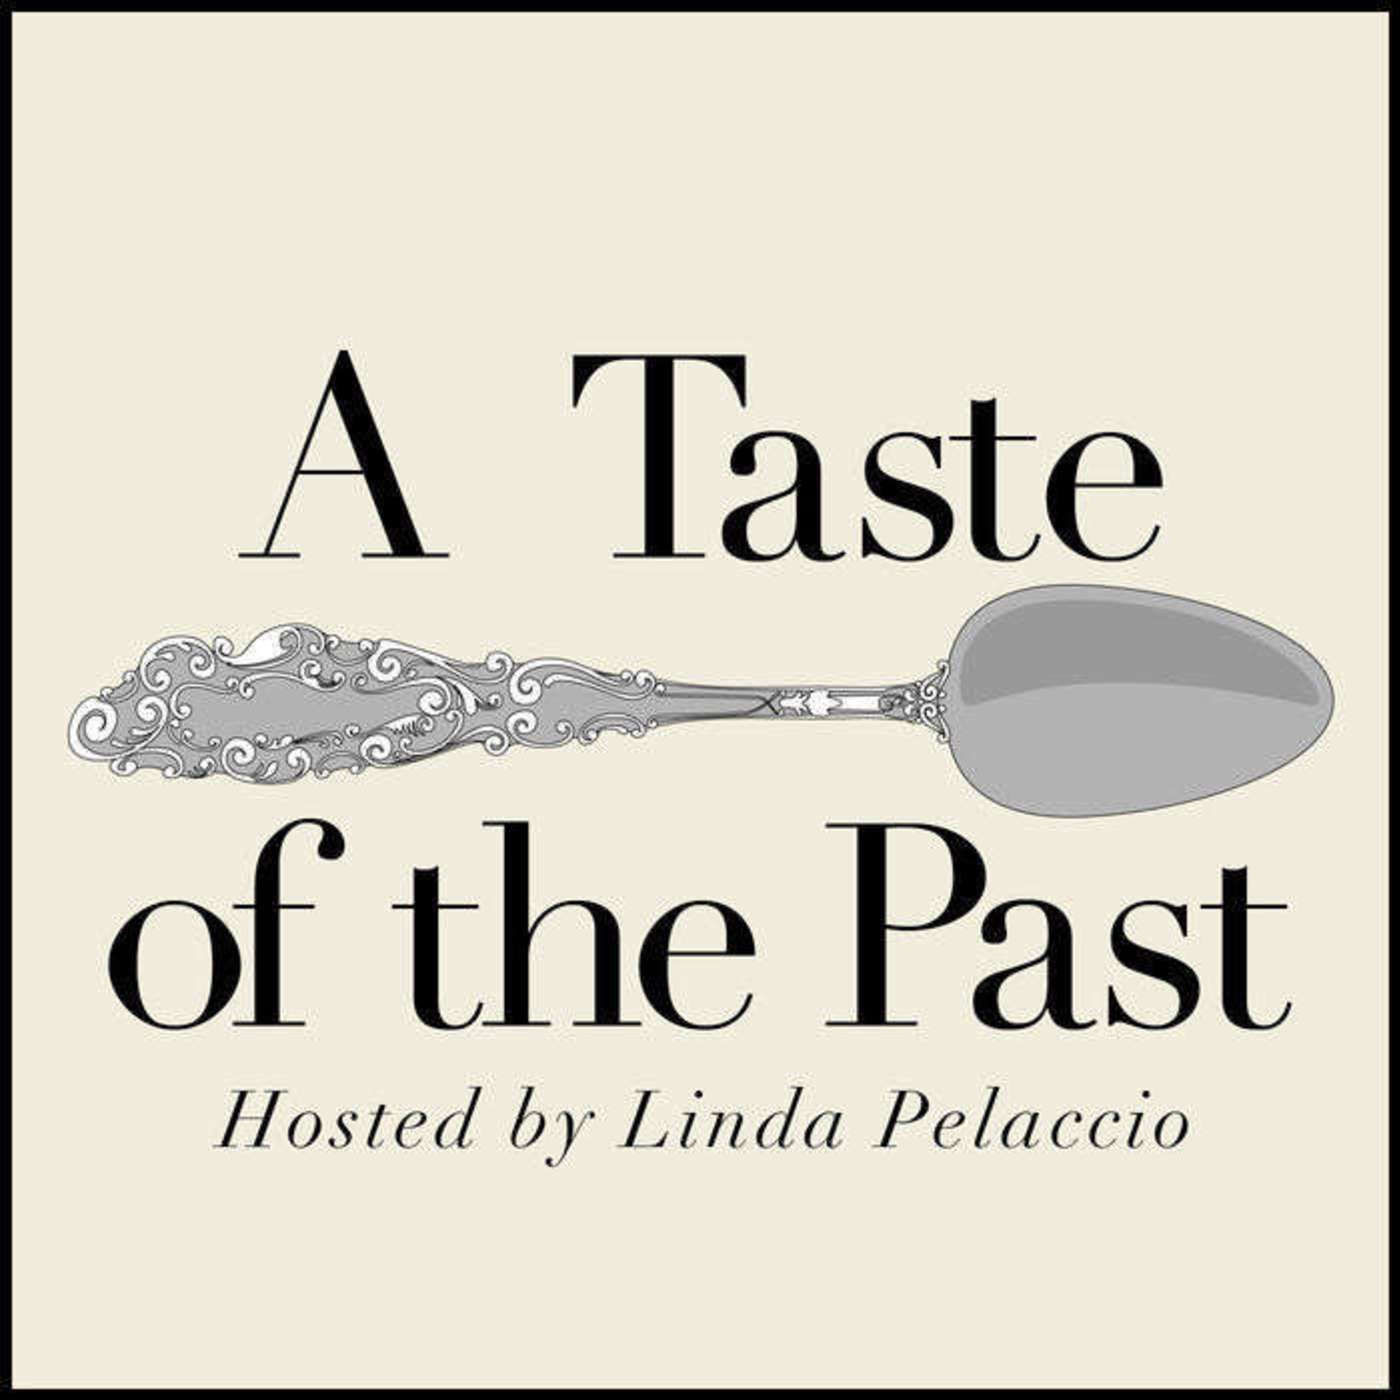 Episode 52: American Cooking with Molly O'Neill